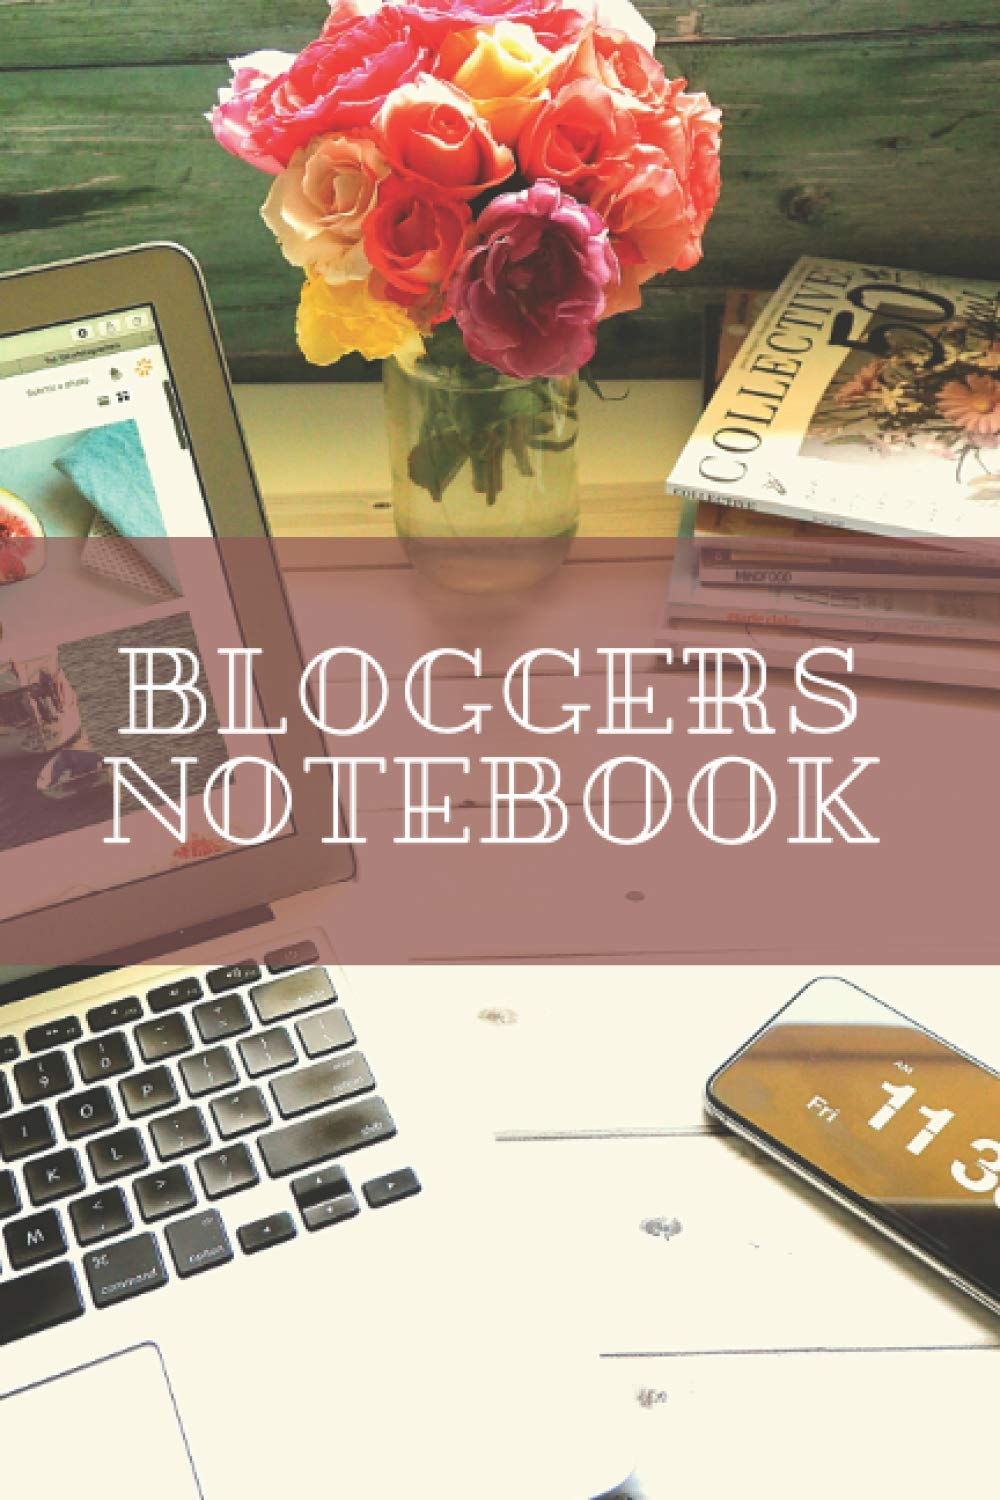 Bloggers Notebook: Blog Planning Notebook - Manage Your Blogging Goals - Post Organizer to Keep Track of Ideas/Outline, Hashtags/Keywords, Success rate and Much More (120 Pages 6 x 9 in)